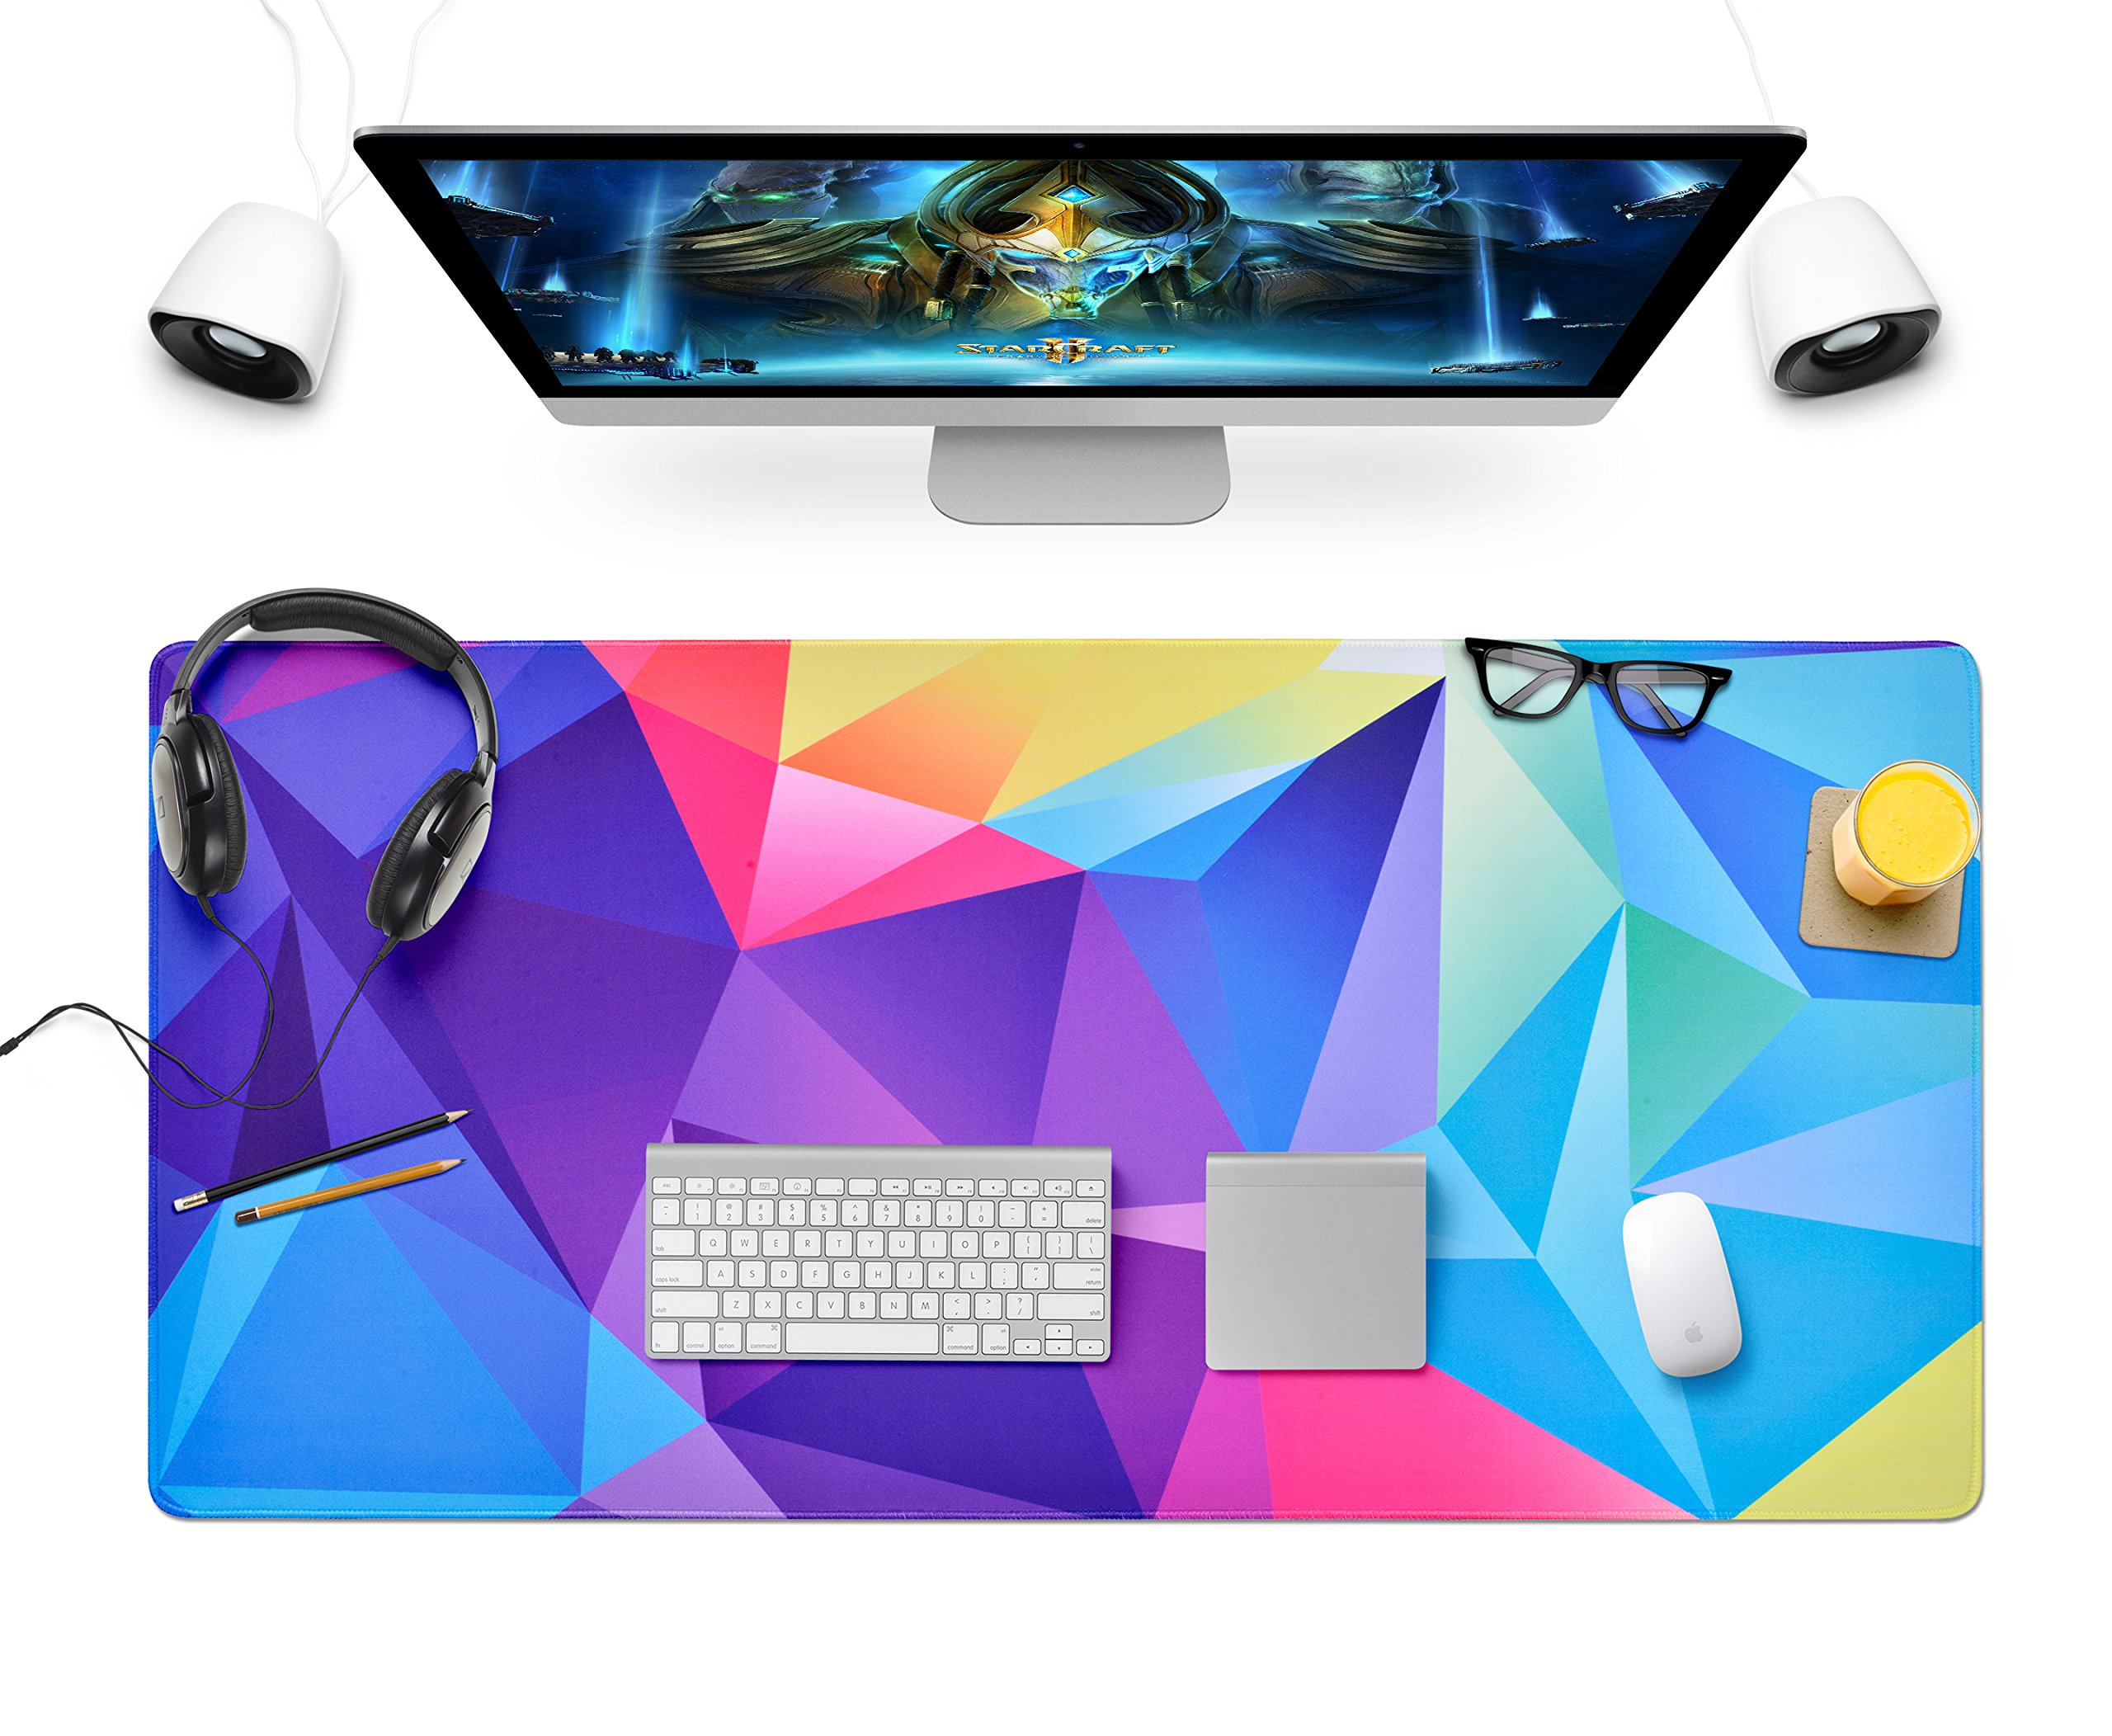 Extended Gaming Mouse Pad,Large Keyboard Pad,Laptop Mat,Computer Mouse Mat,Natural Rubber Base Cloth,Anti Slip,Precise Stitched Edges,Multifunctional Desk Writing Mat for Office/Home (31.5''×15.75'')